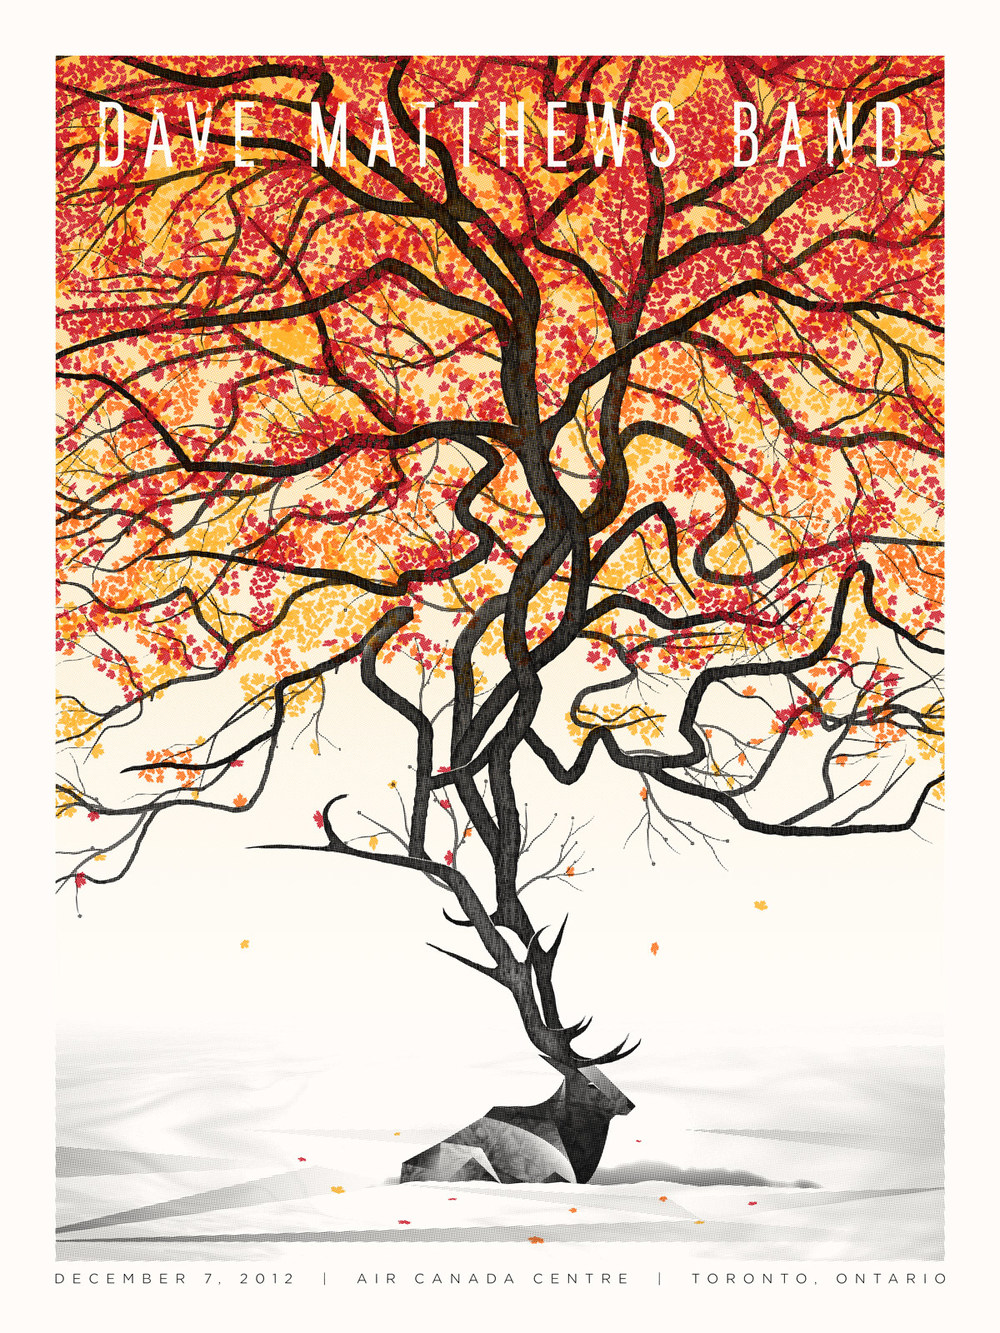 Dave Matthews Band Poster by DKNG